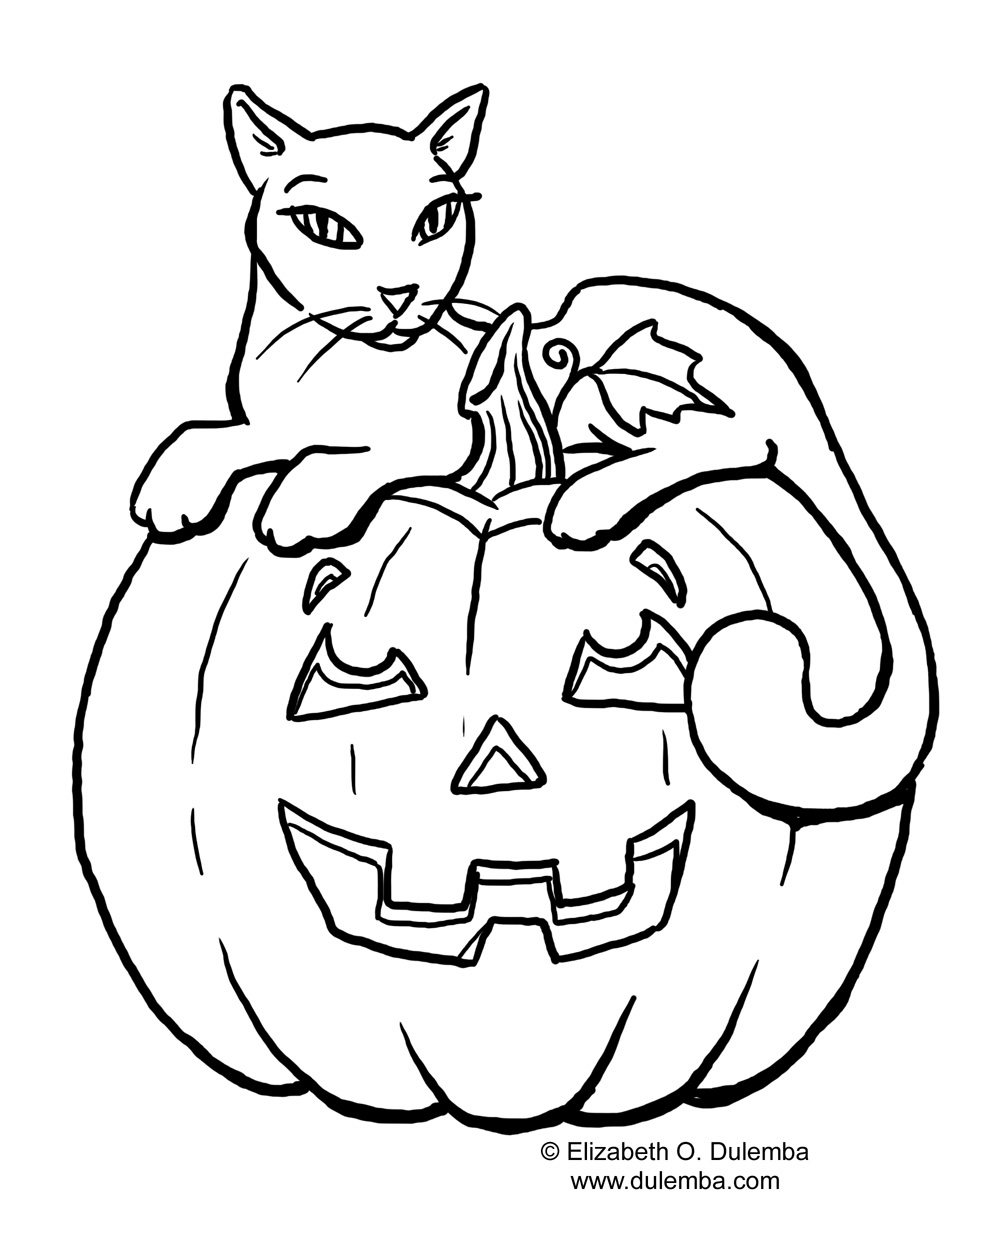 pumpking coloring pages pumpkin coloring pages minister coloring pages pumpking coloring